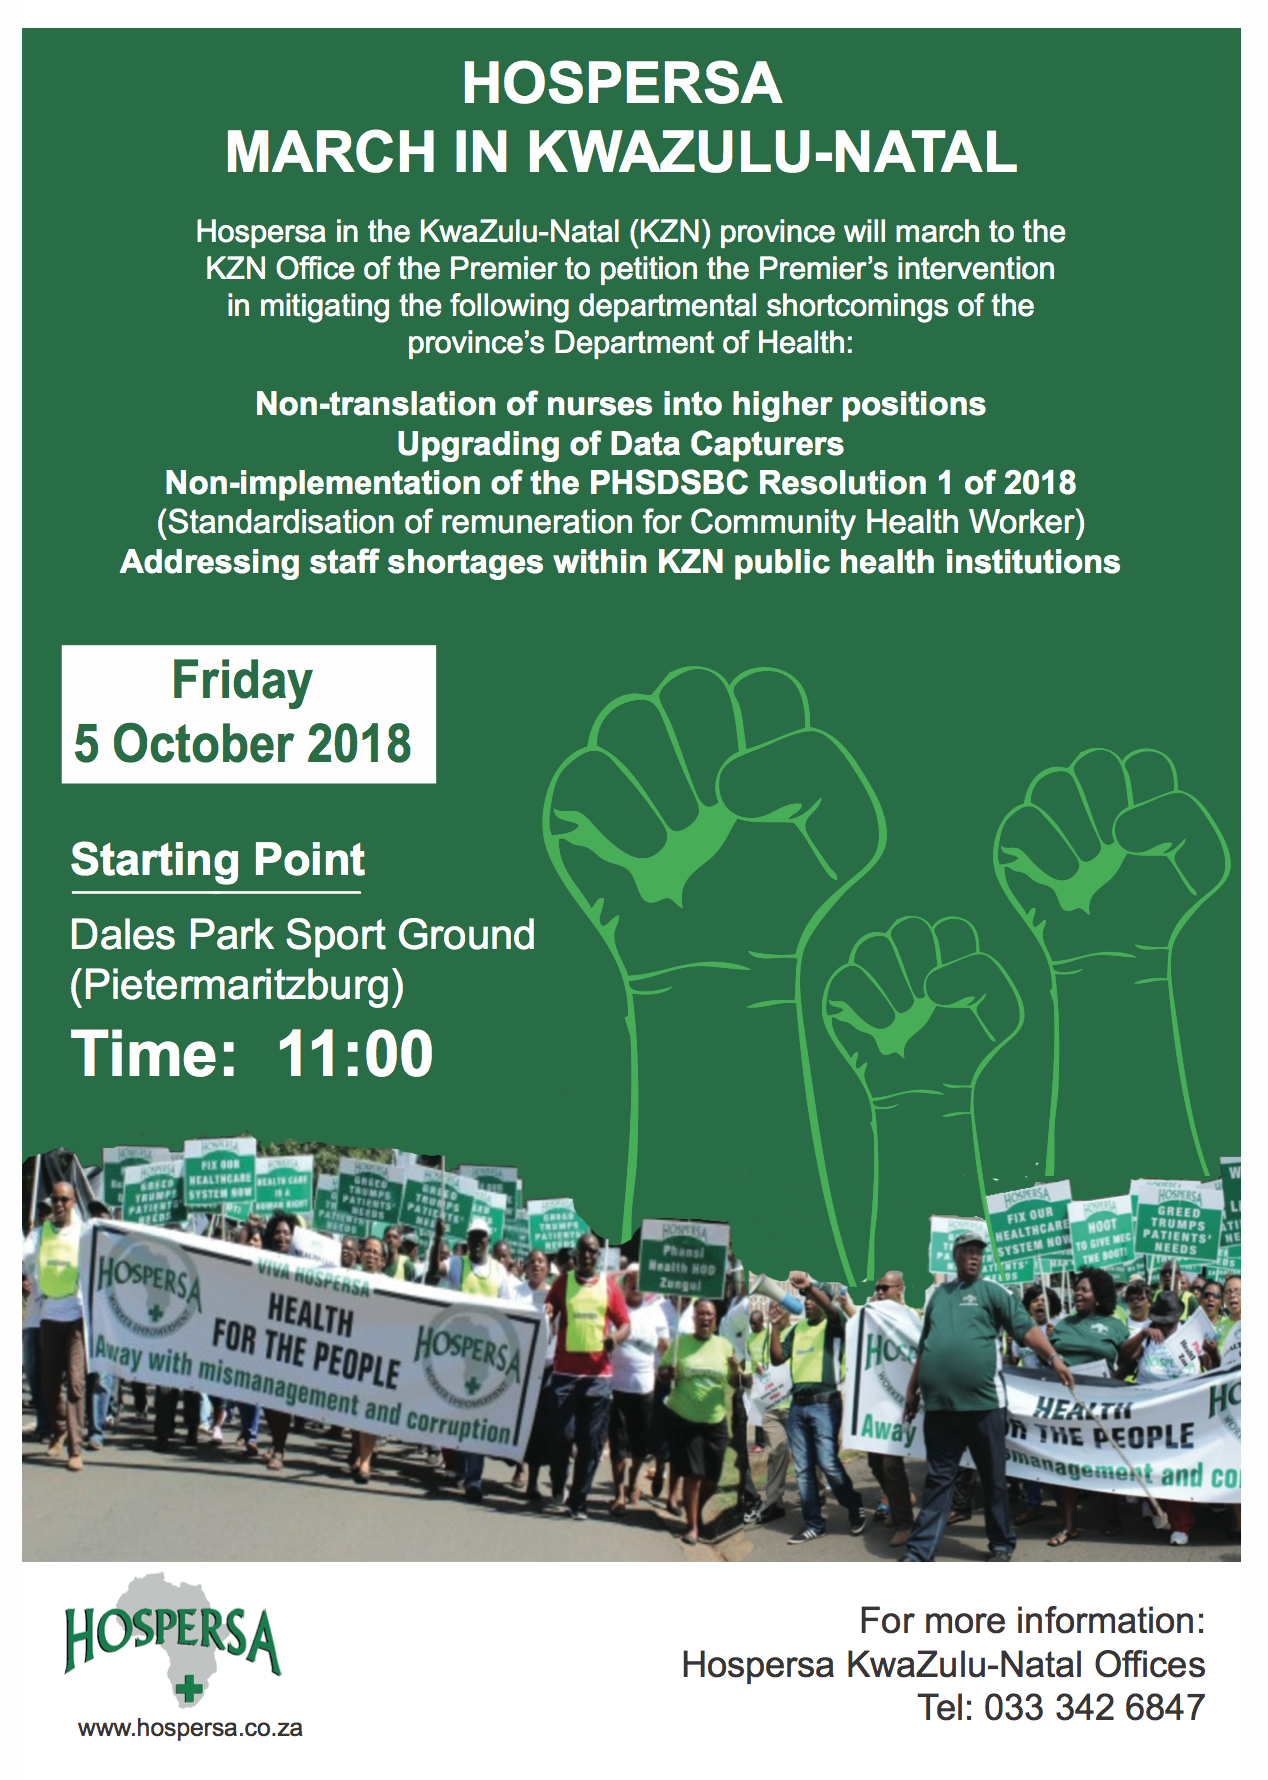 HOSPERSA MARCH IN KWAZULU-NATAL